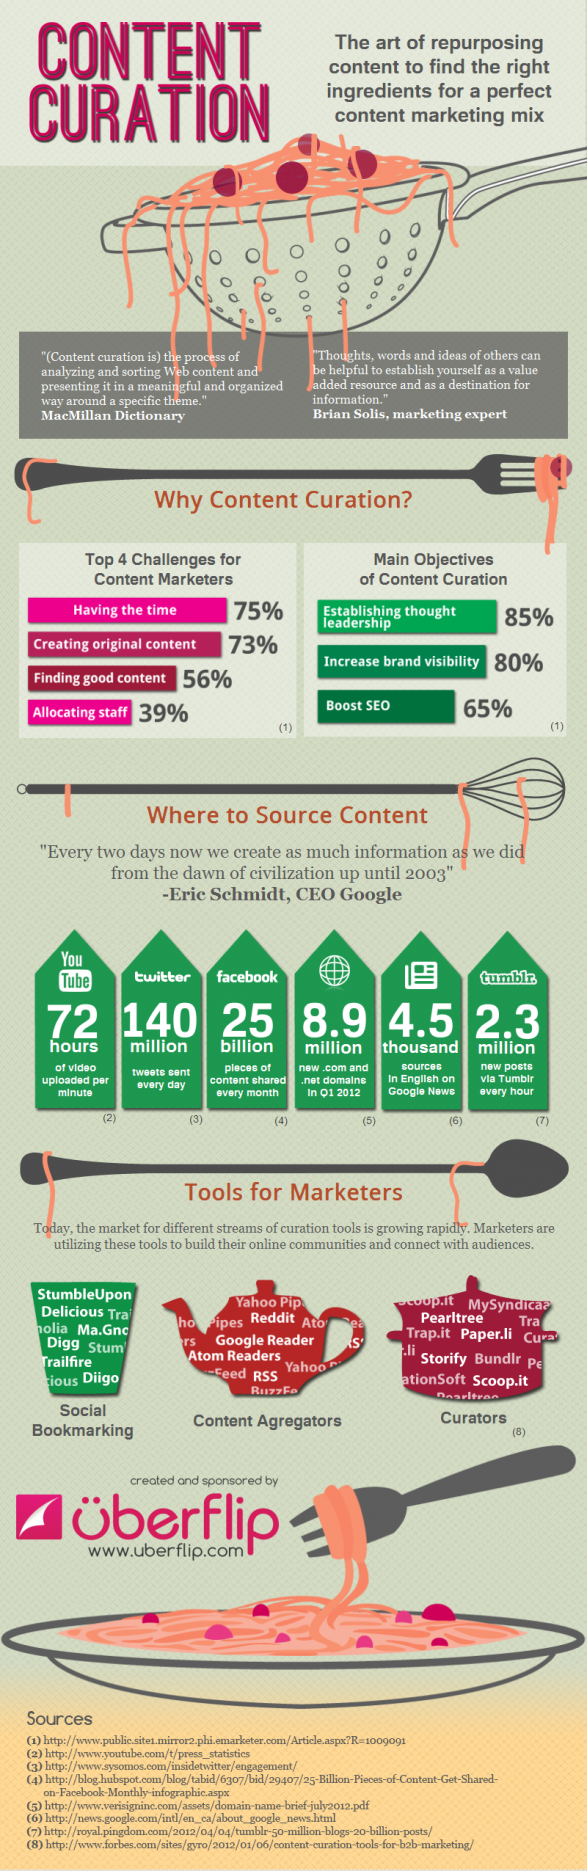 Content Curation: Creating the Perfect Content Marketing Mix